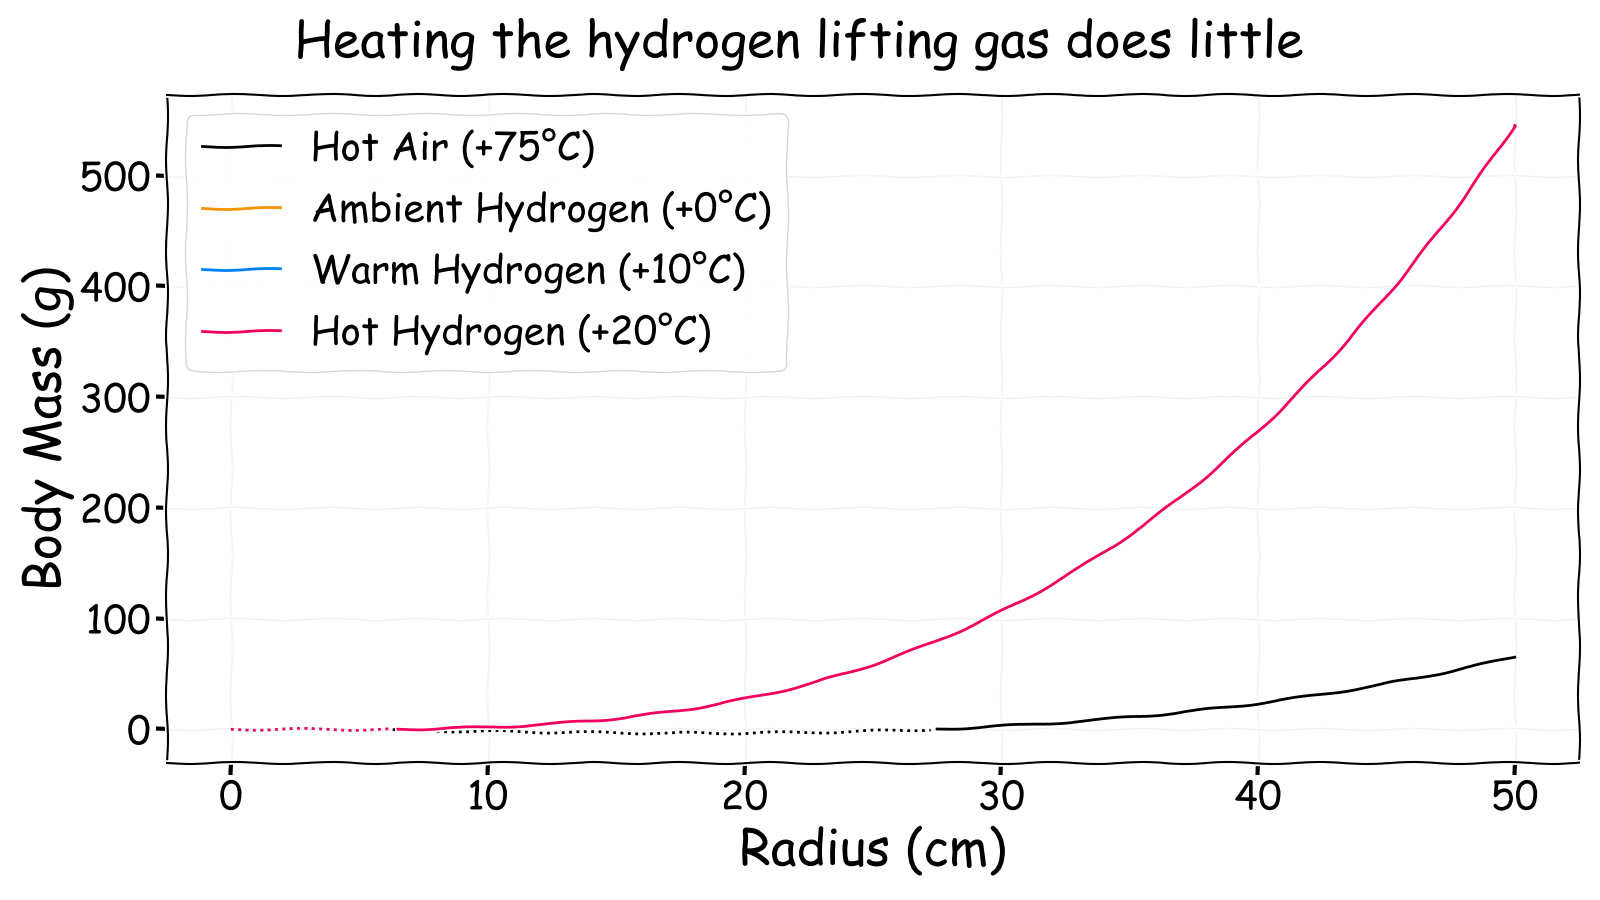 Neutrally buoyant body mass versus radius for different temperature lifting gas